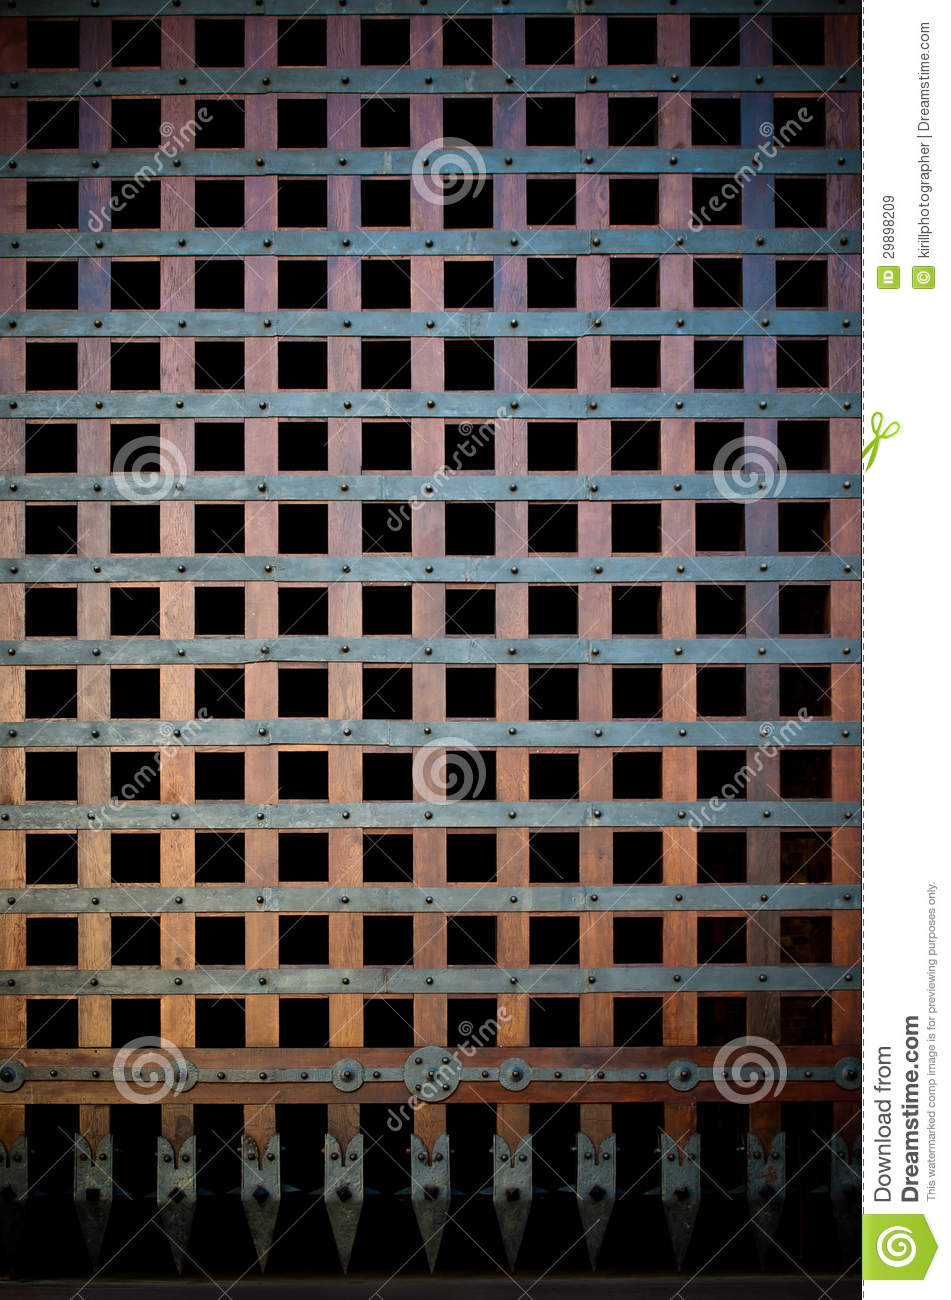 Wooden Portcullis Royalty Free Stock Images - Image: 29898209